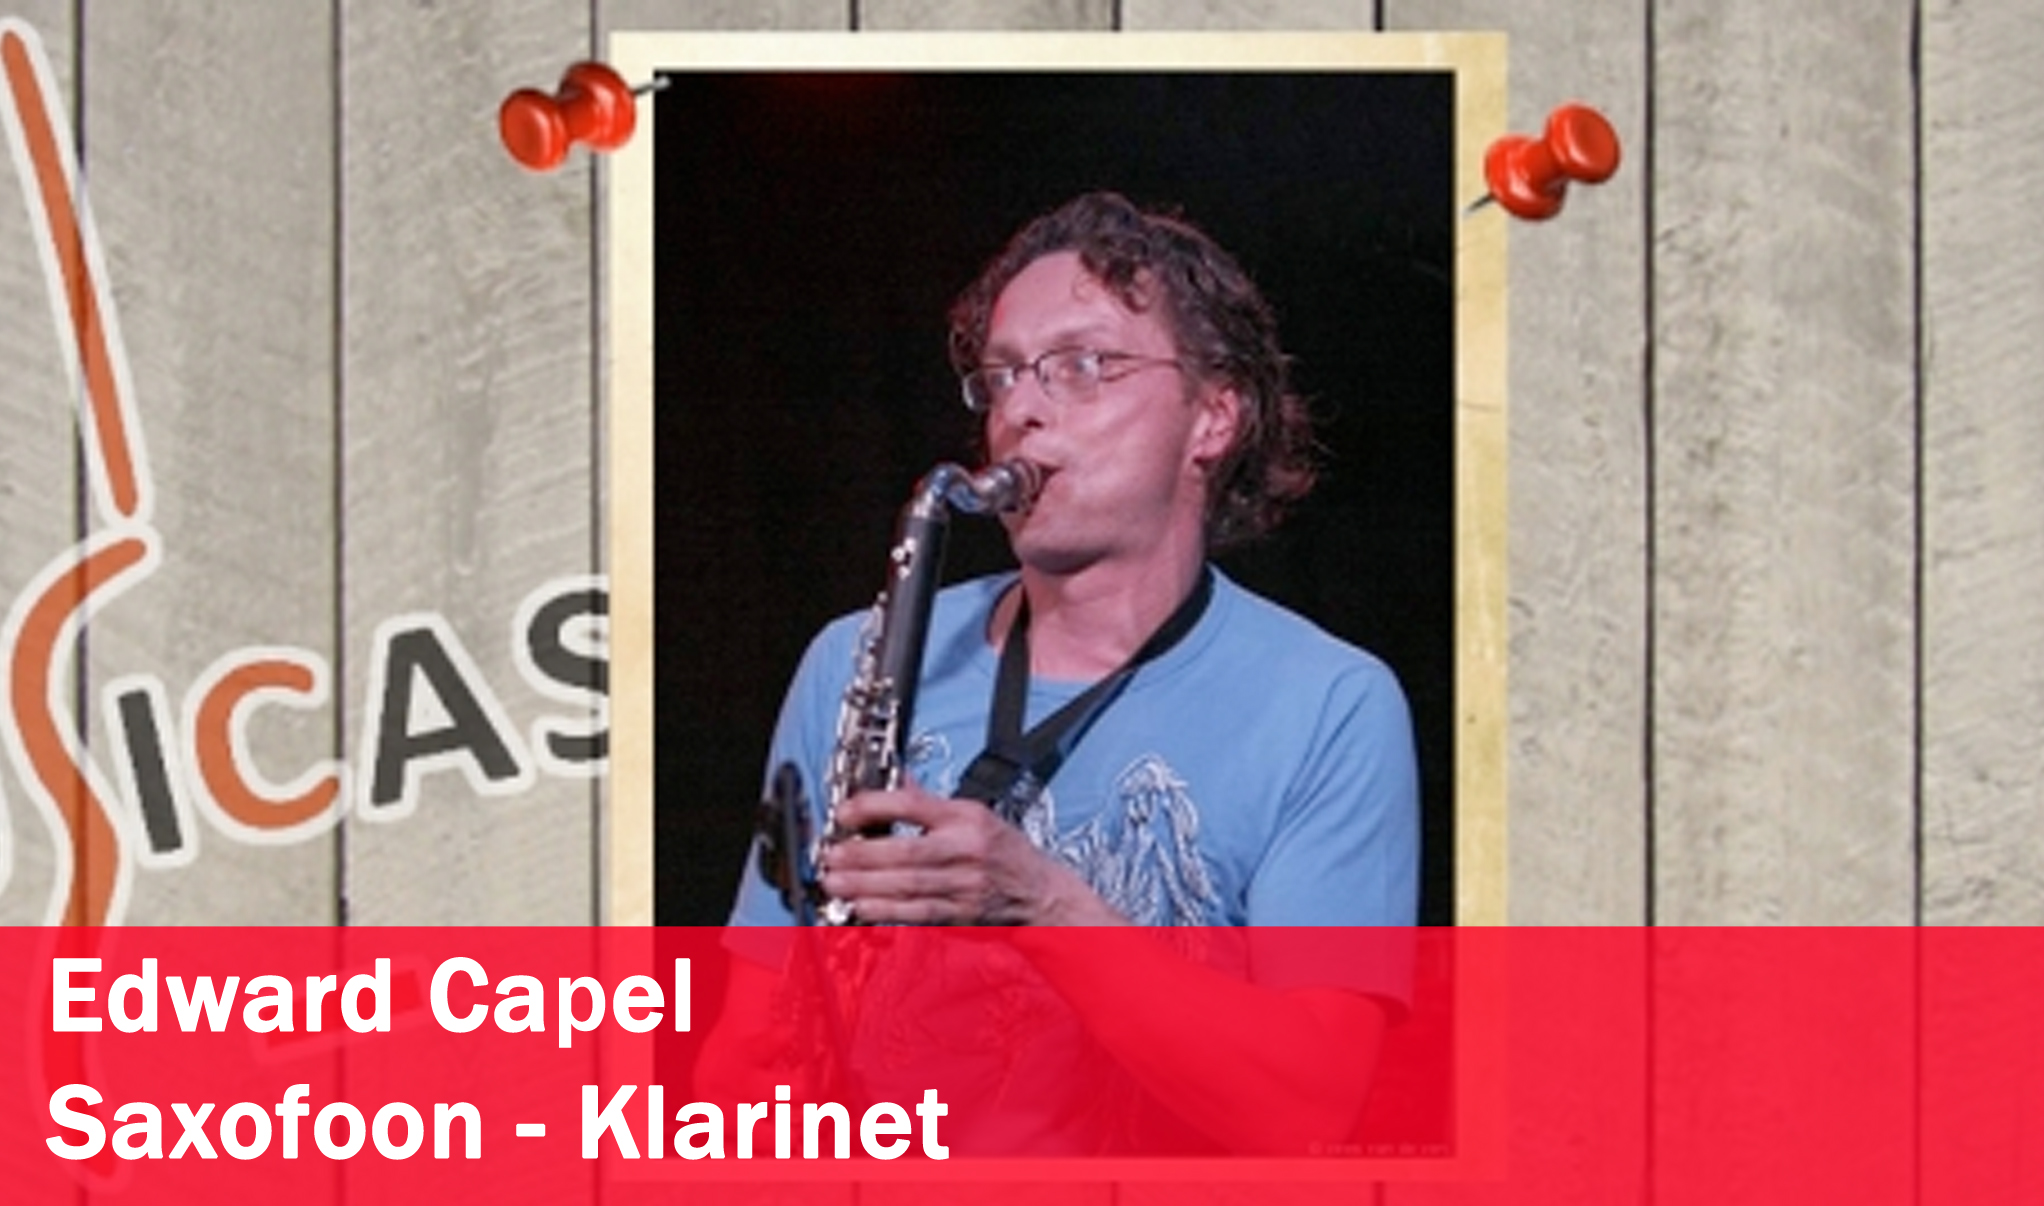 Edward Capel <br>Saxofoon - Klarinet